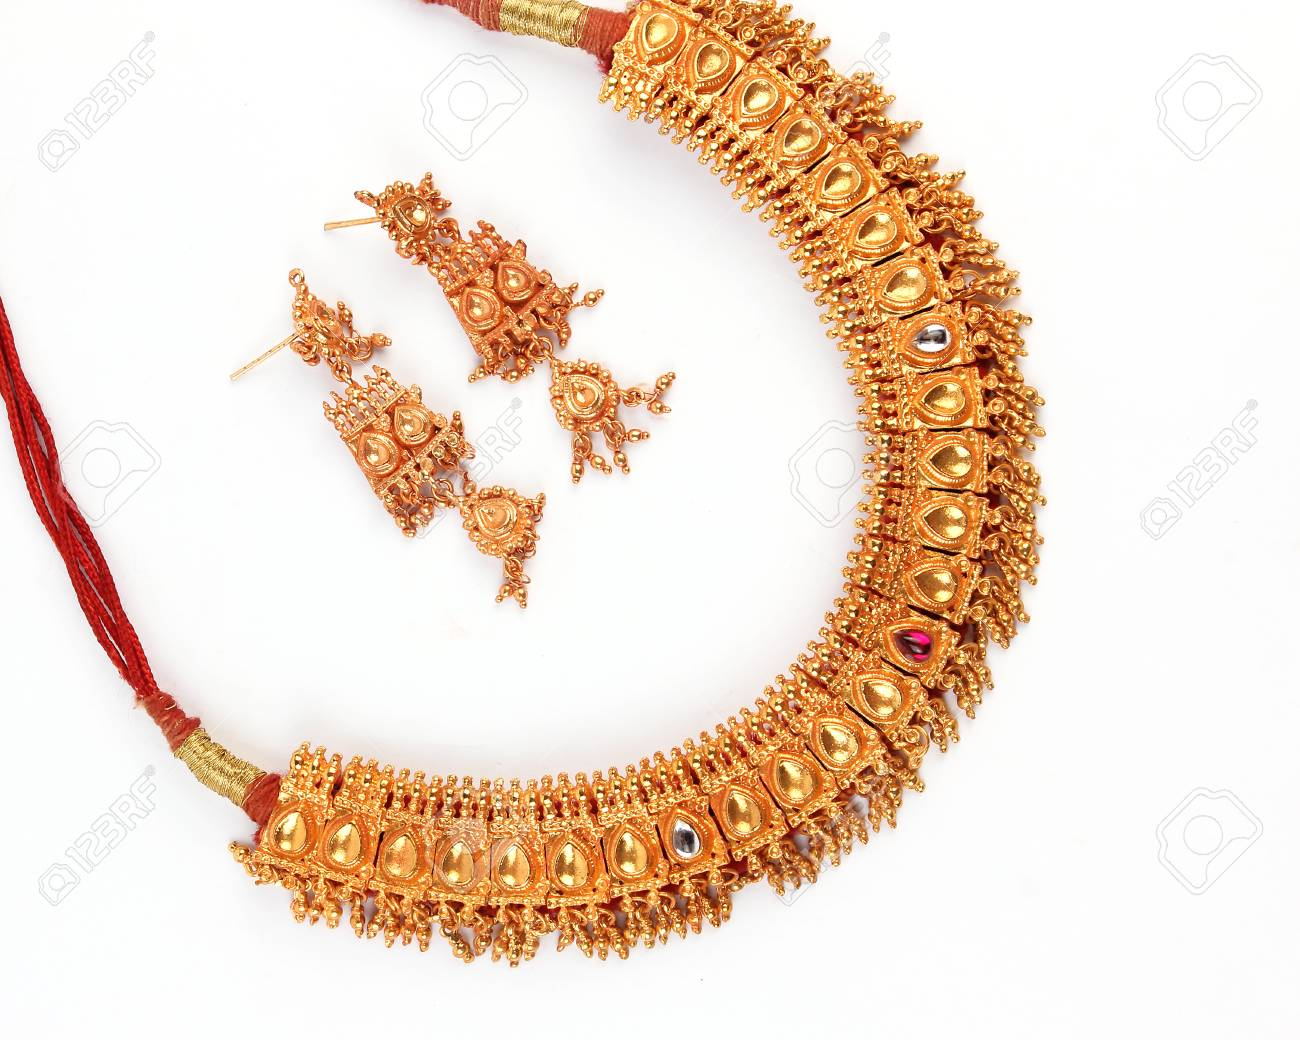 Indian Traditional Gold Jewellery Necklace Earrings Isolated